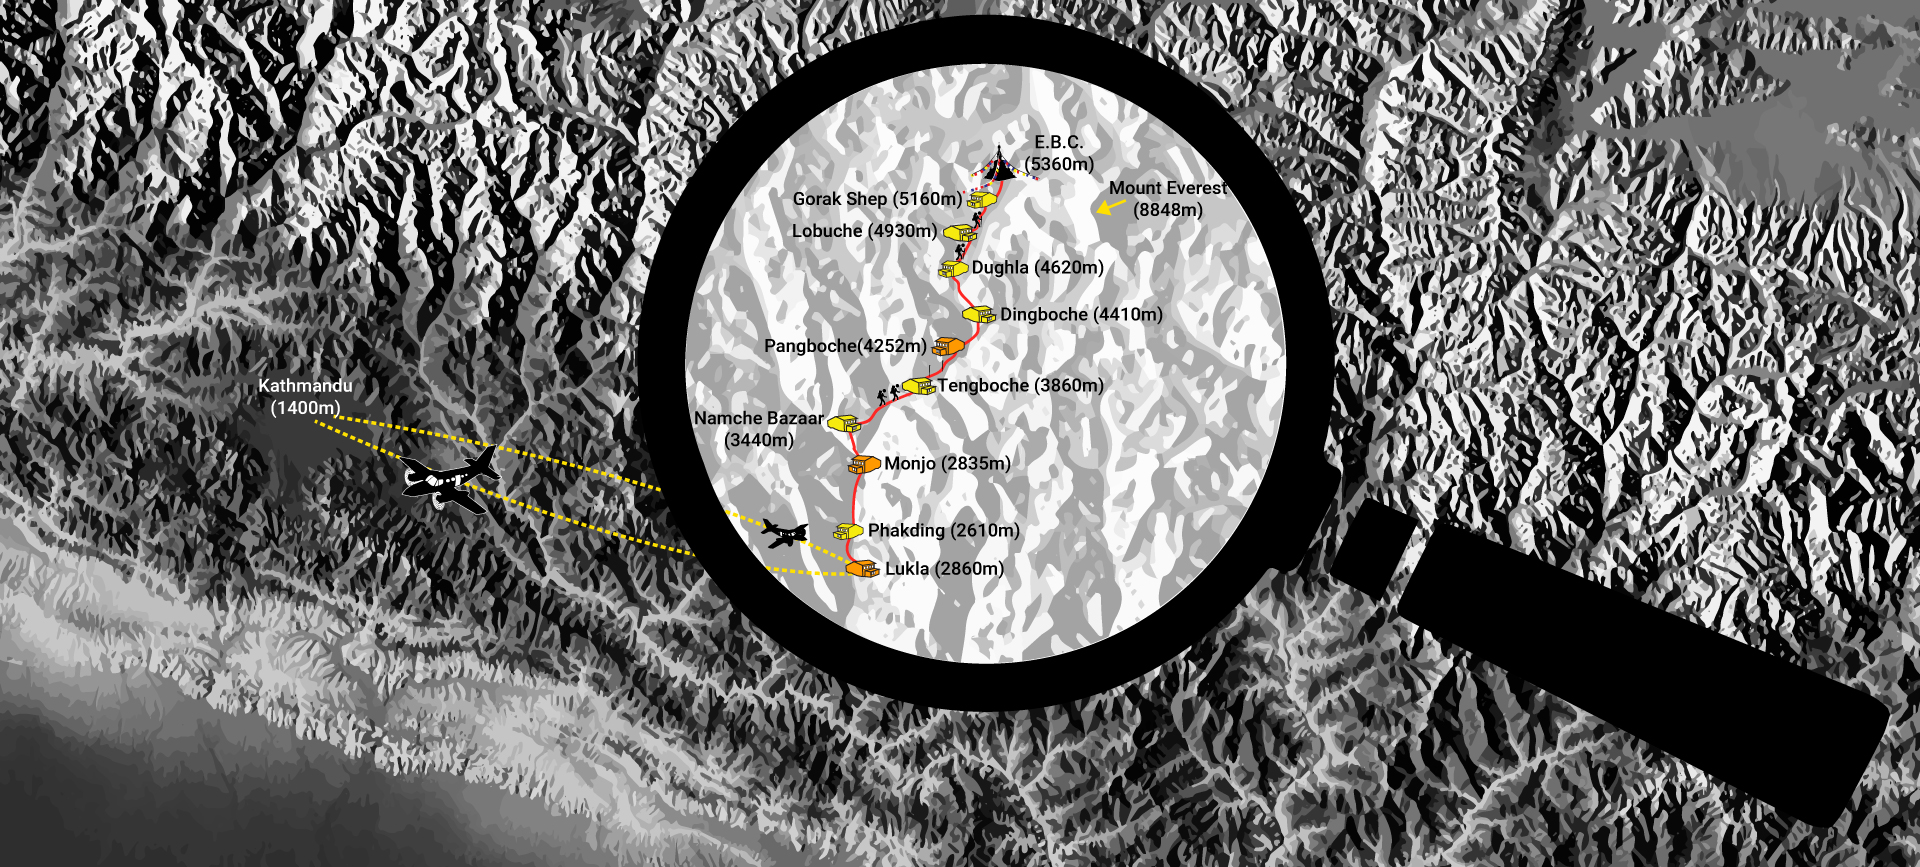 Everest Base Camp Trek | Map of Nepal with trek stages